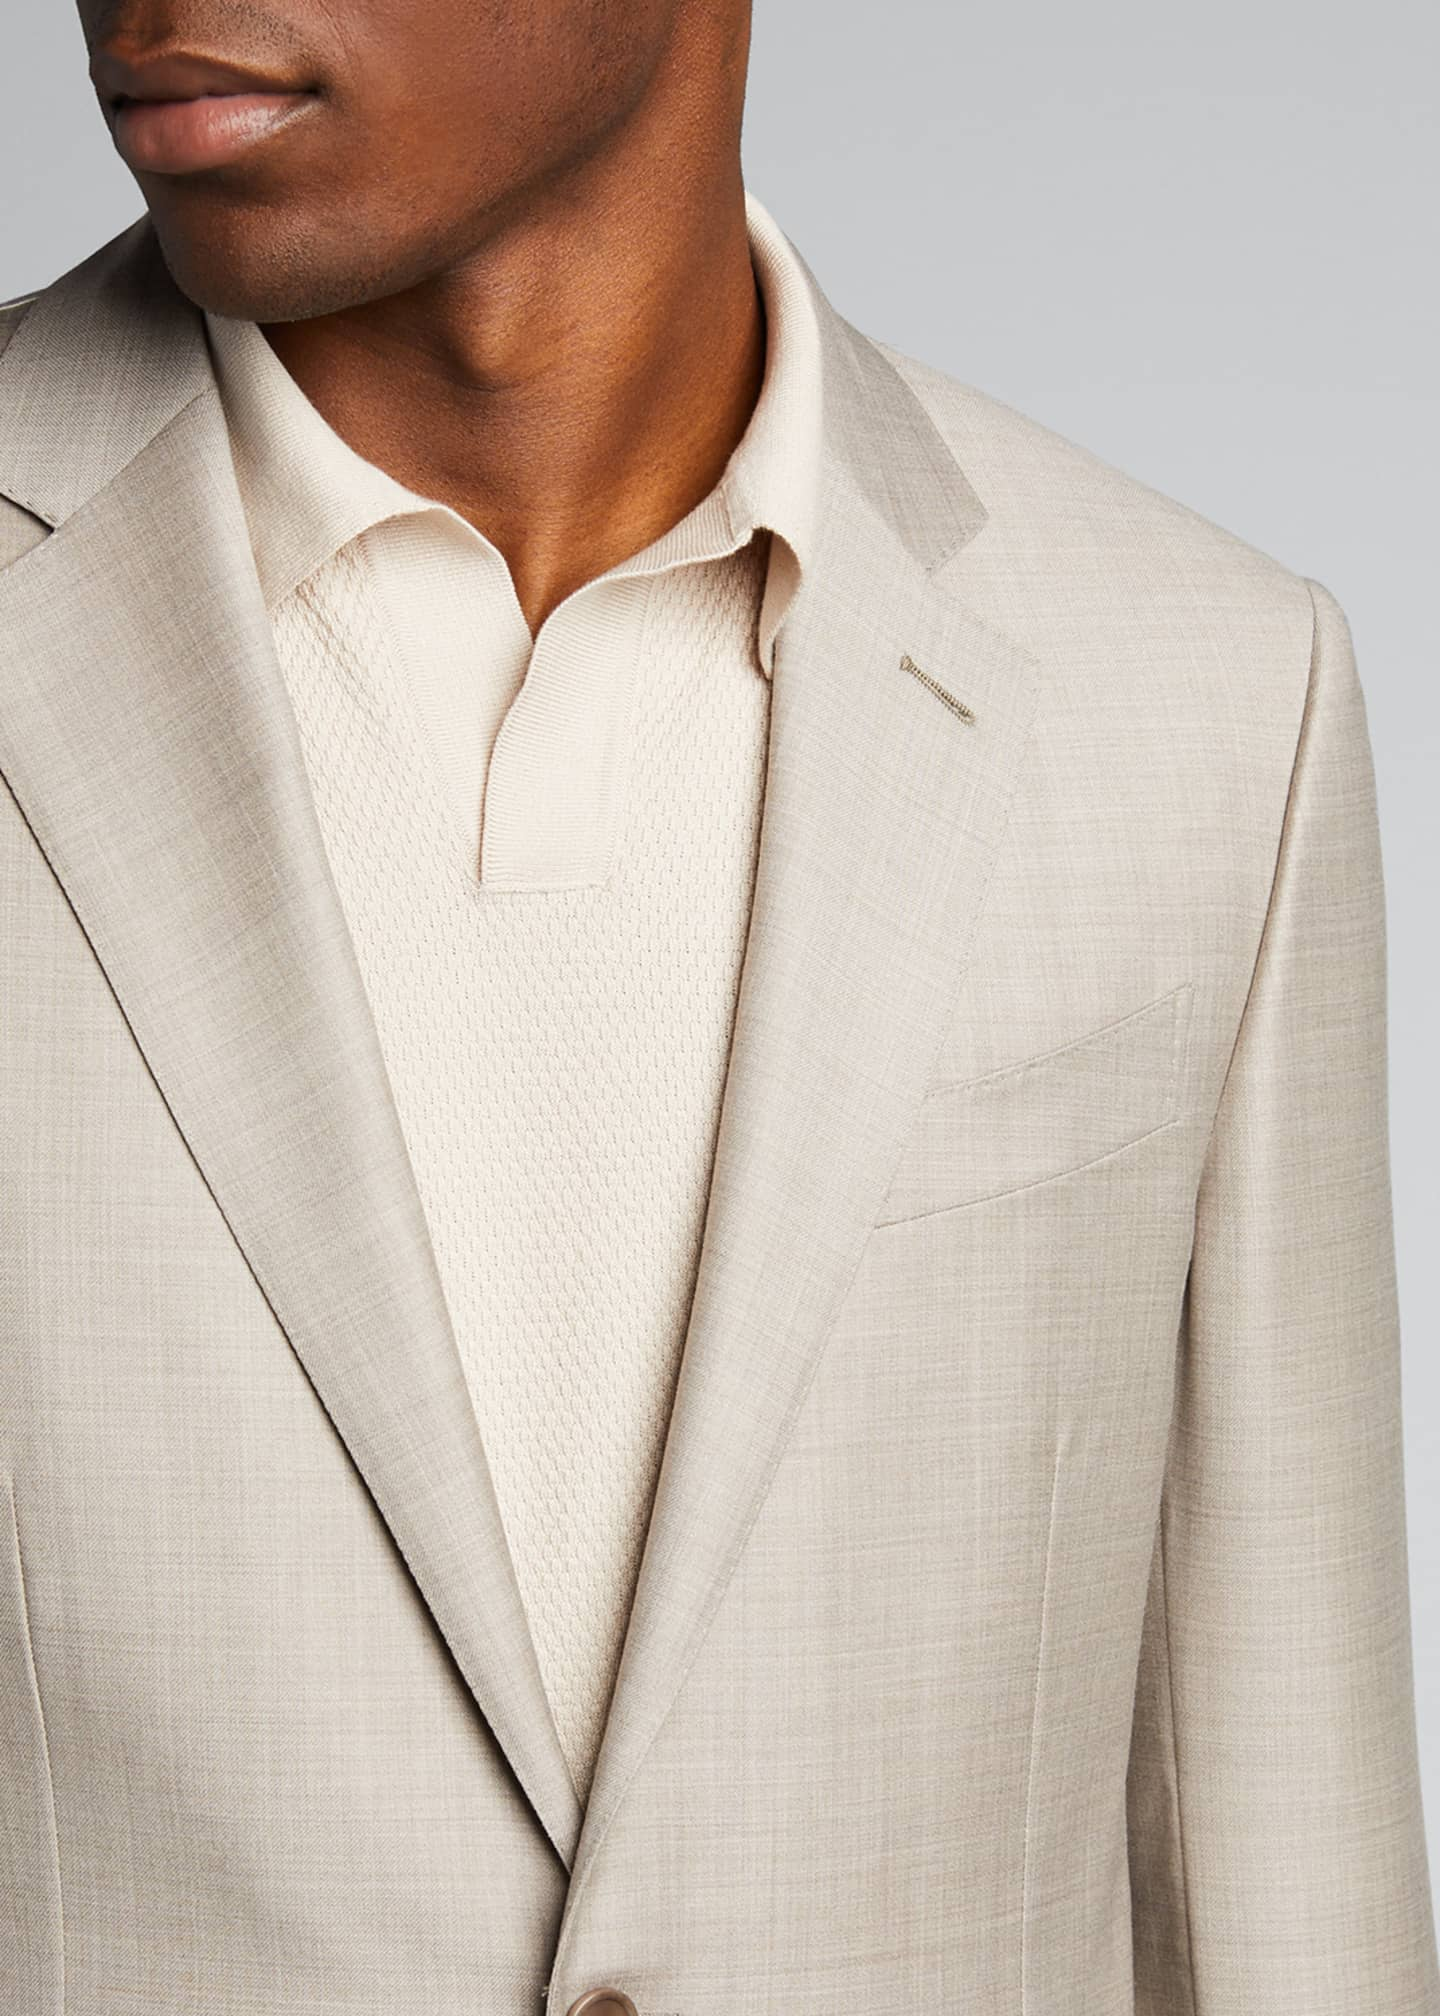 Image 4 of 5: Men's Heathered Solid Regular-Fit Wool Two-Piece Suit